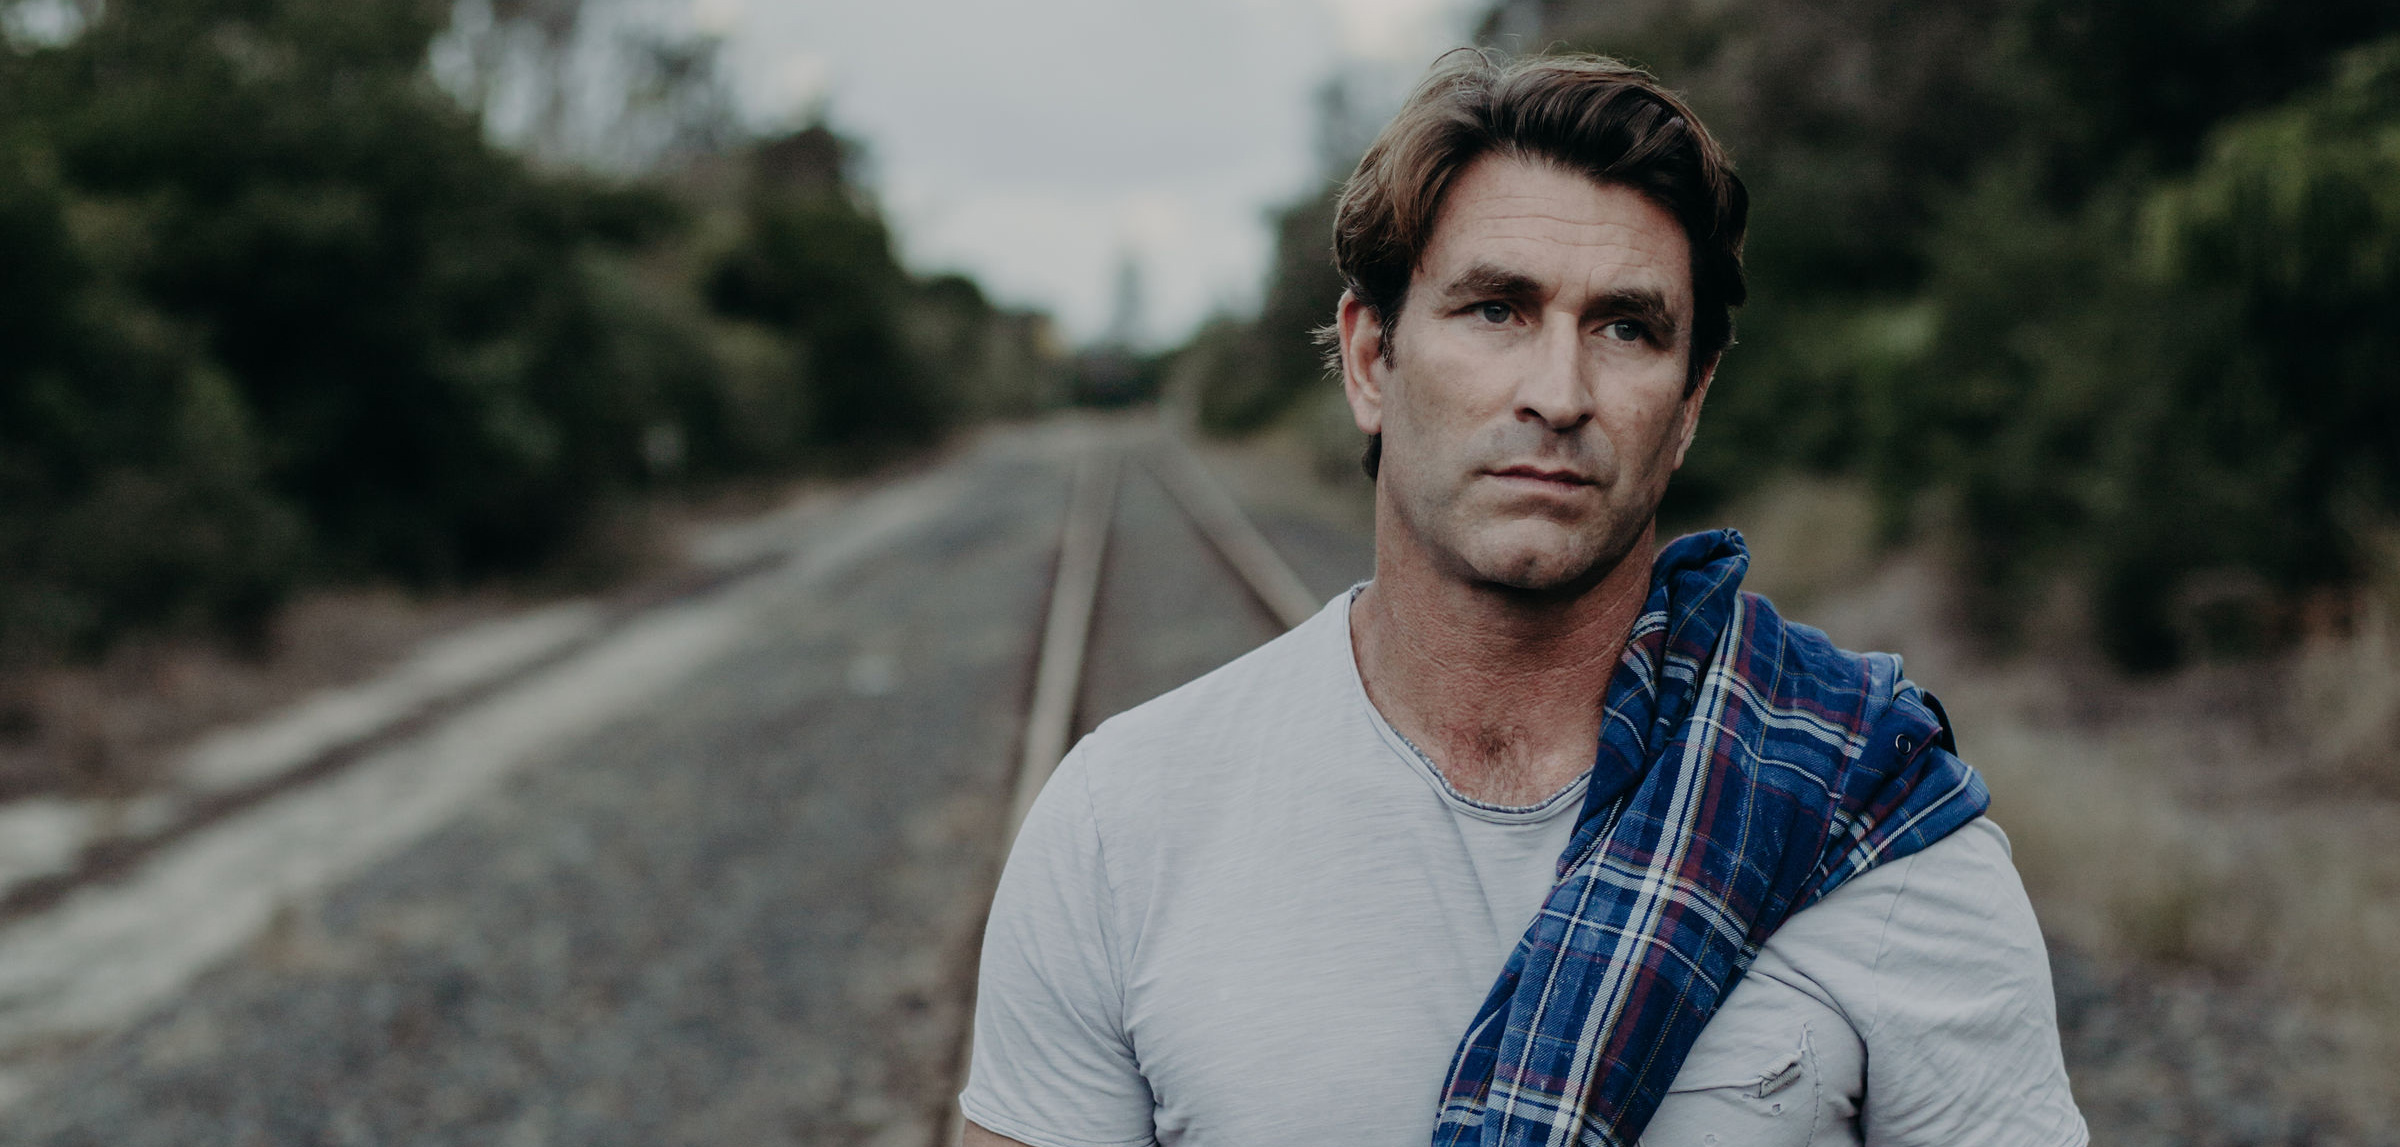 Pete Murray announces new EP 'The Night' set for release March 26